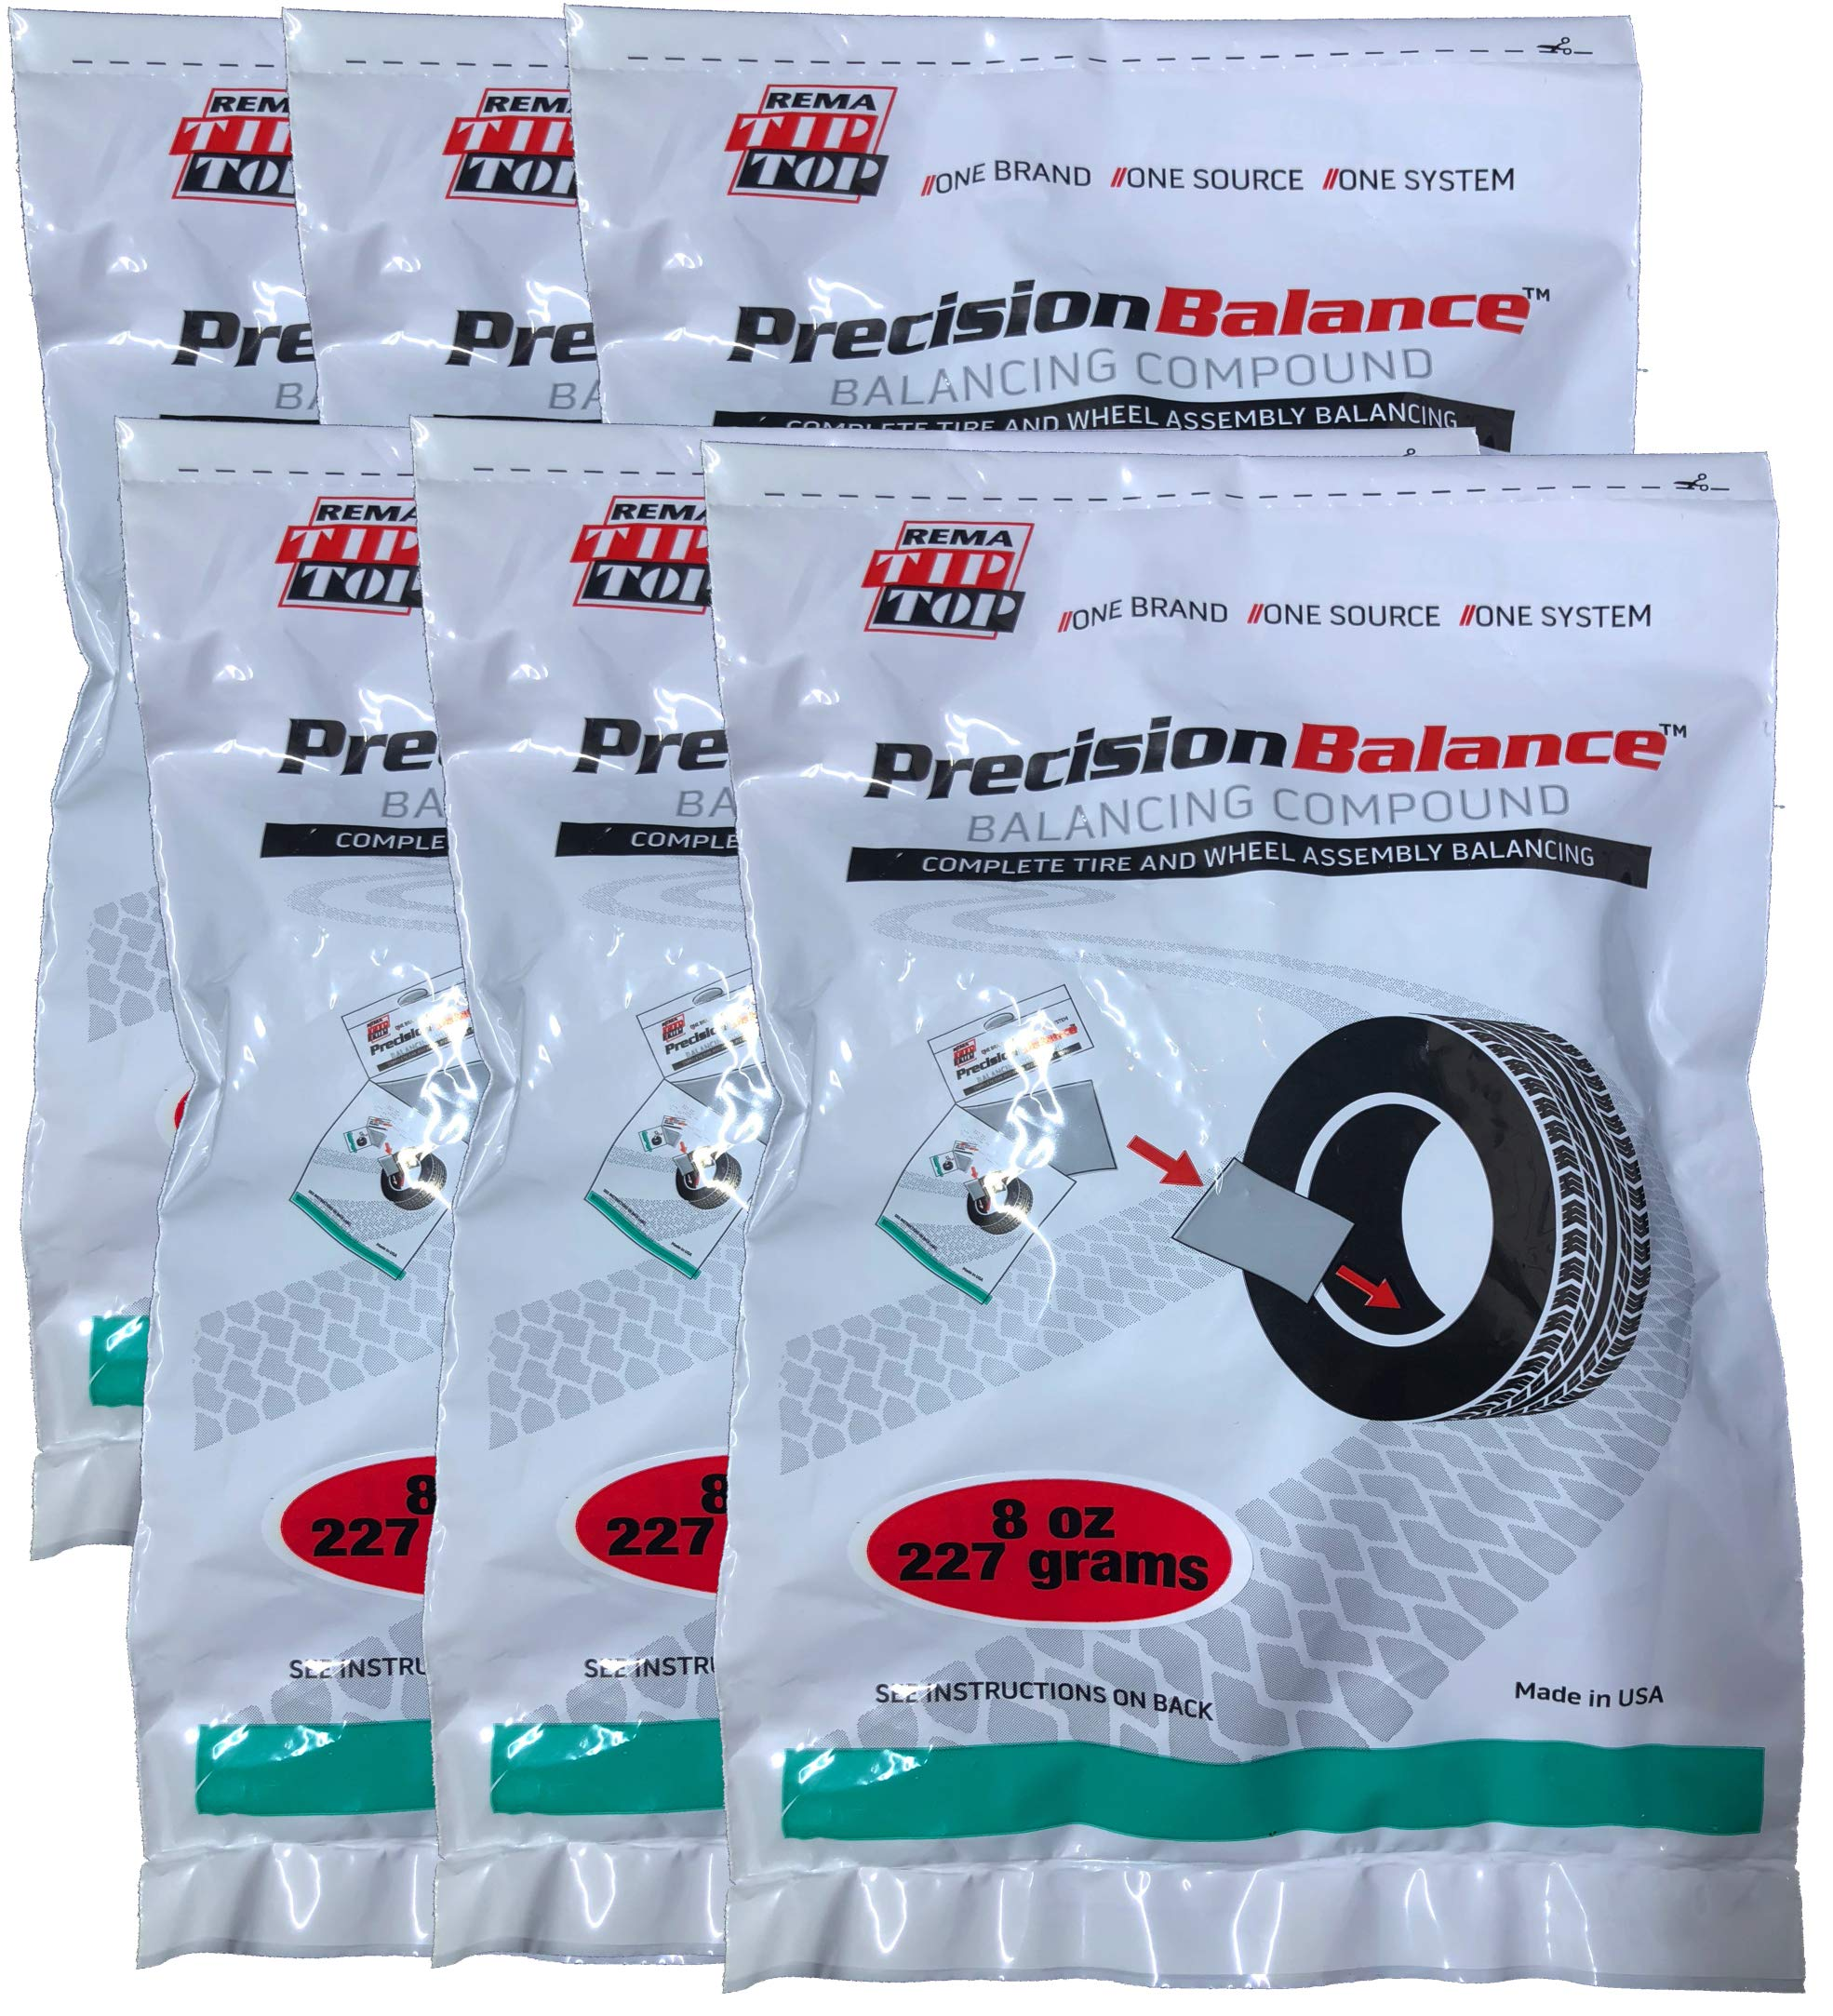 Rema Tip Top 6 PrecisionBalance Tire Balancing Compound Beads Kits - Drop in Bags - (8 oz. / 227 Grams) - (6 Kits) by Rema Tip Top